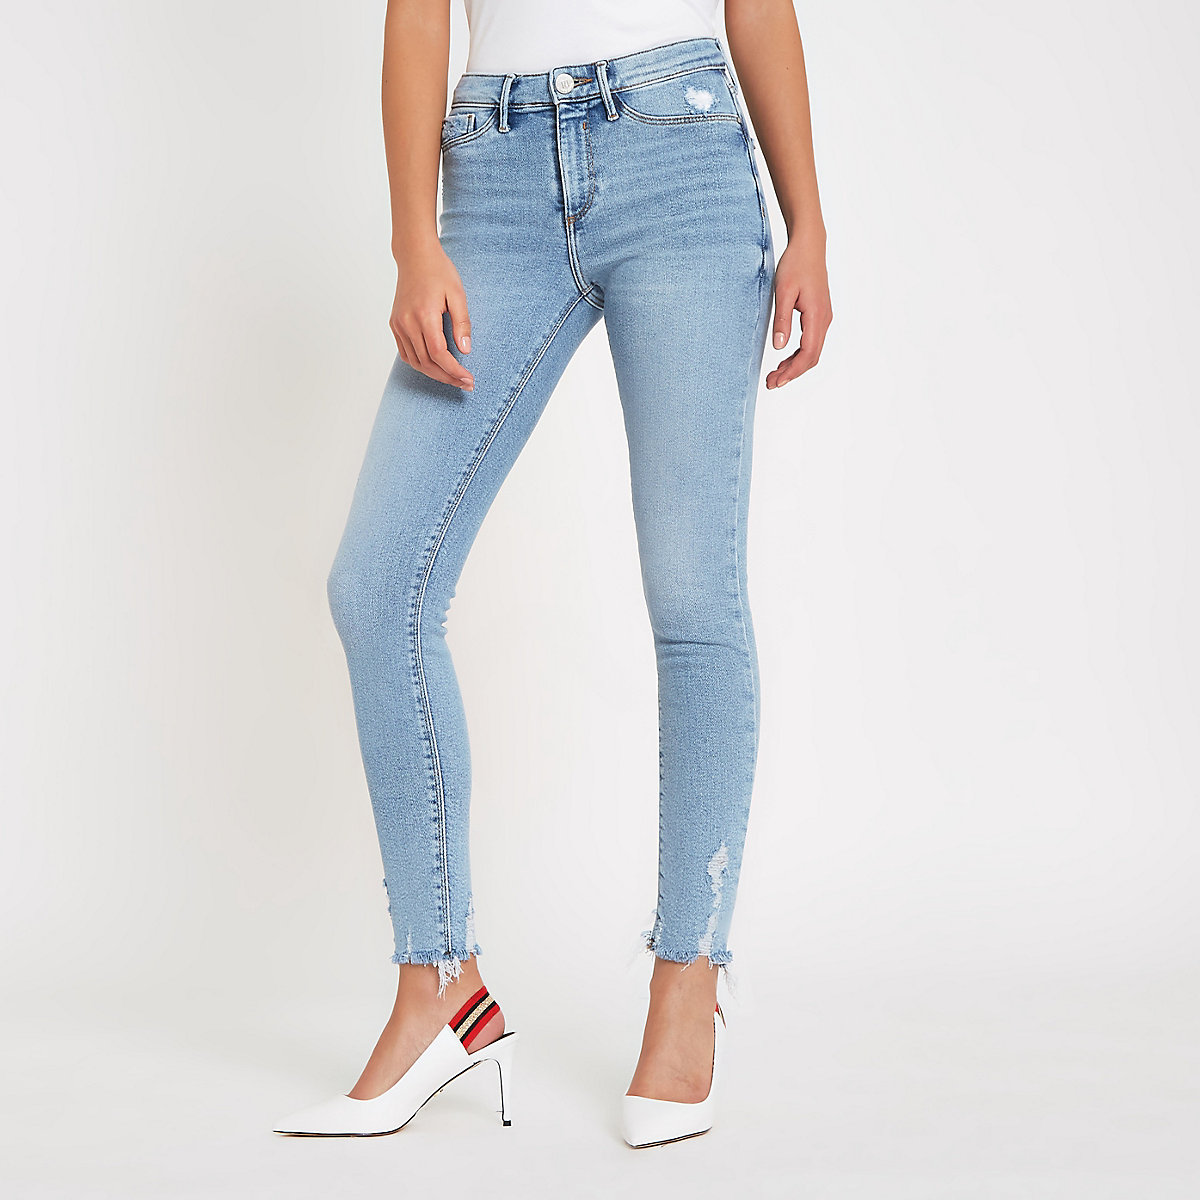 Light blue Molly mid rise jeggings